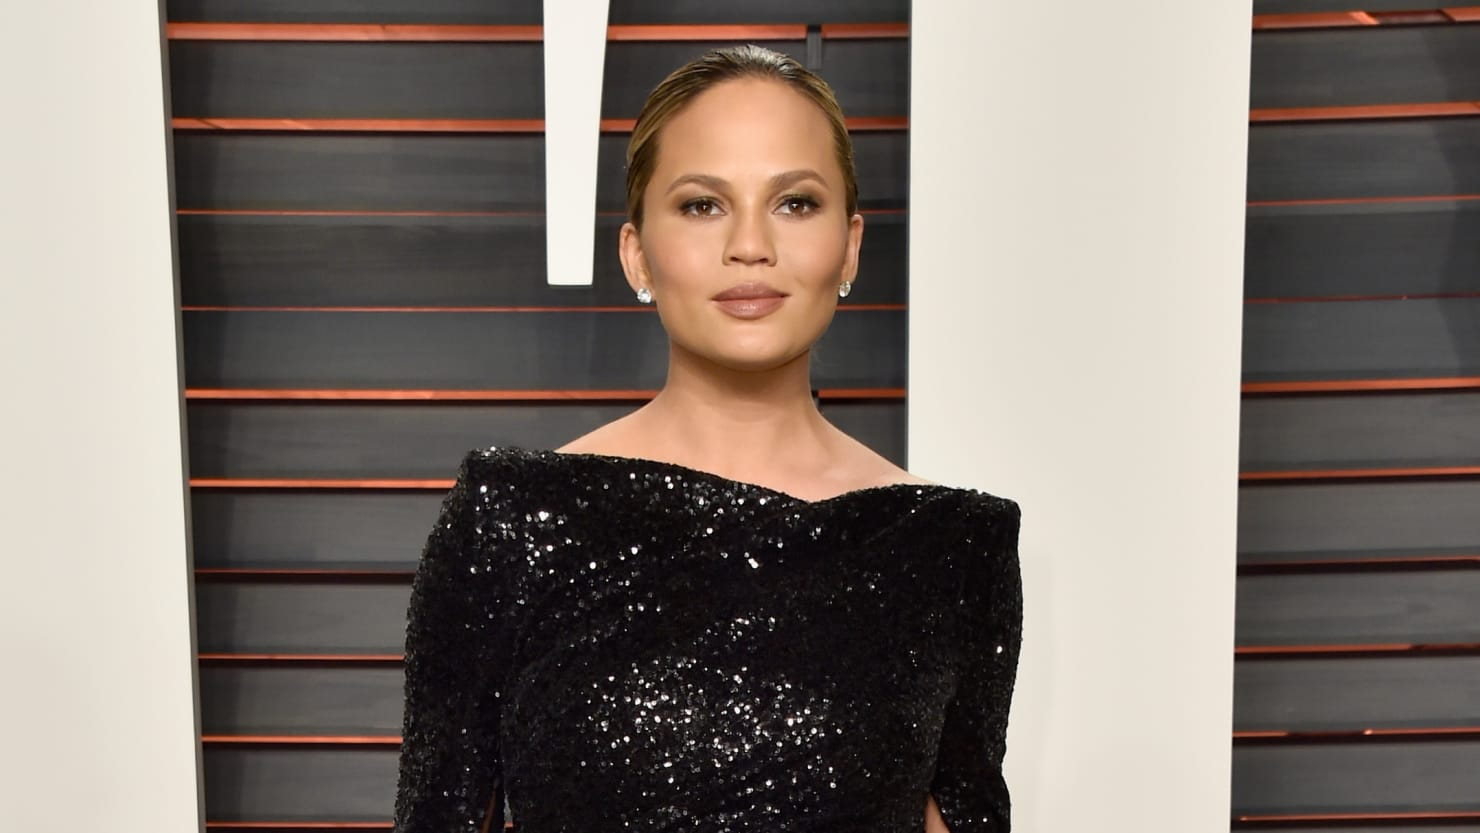 Chrissy Teigen's Miscarriage Unifies the Toxic Online Right